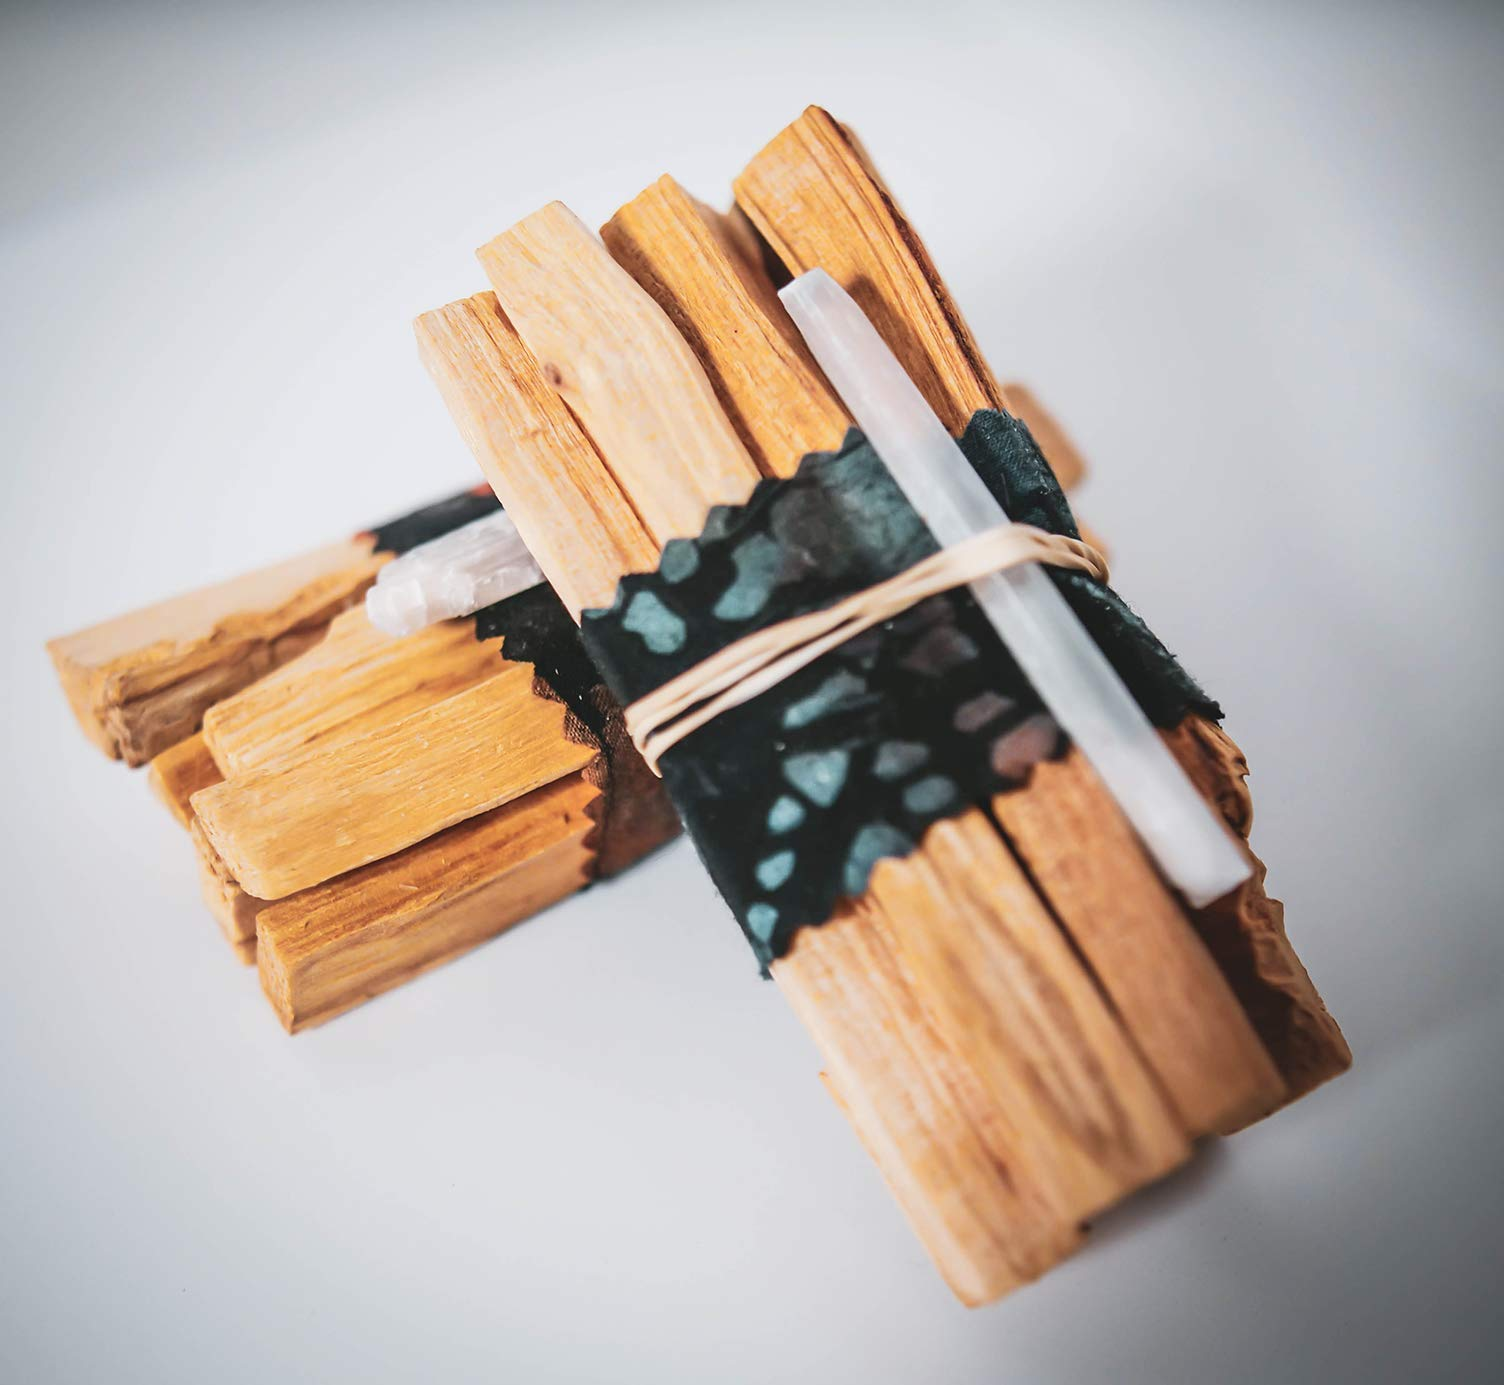 Galactic Brain Palo Santo Sticks | 12 High Resin Smudge Sticks Bundled with Selenite Stones | 90 Grams Palo Santo Wood for Cleansing Your Home by Galactic Brain (Image #3)